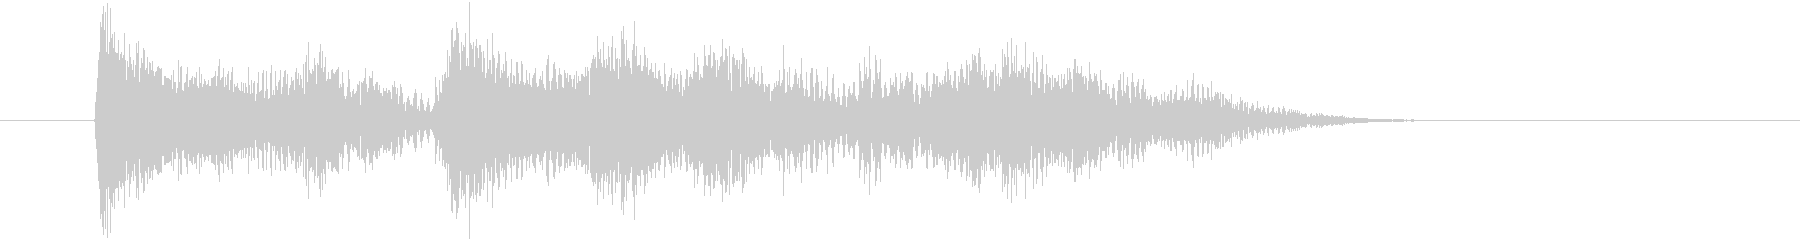 Please abort the work's unreproduced waveform